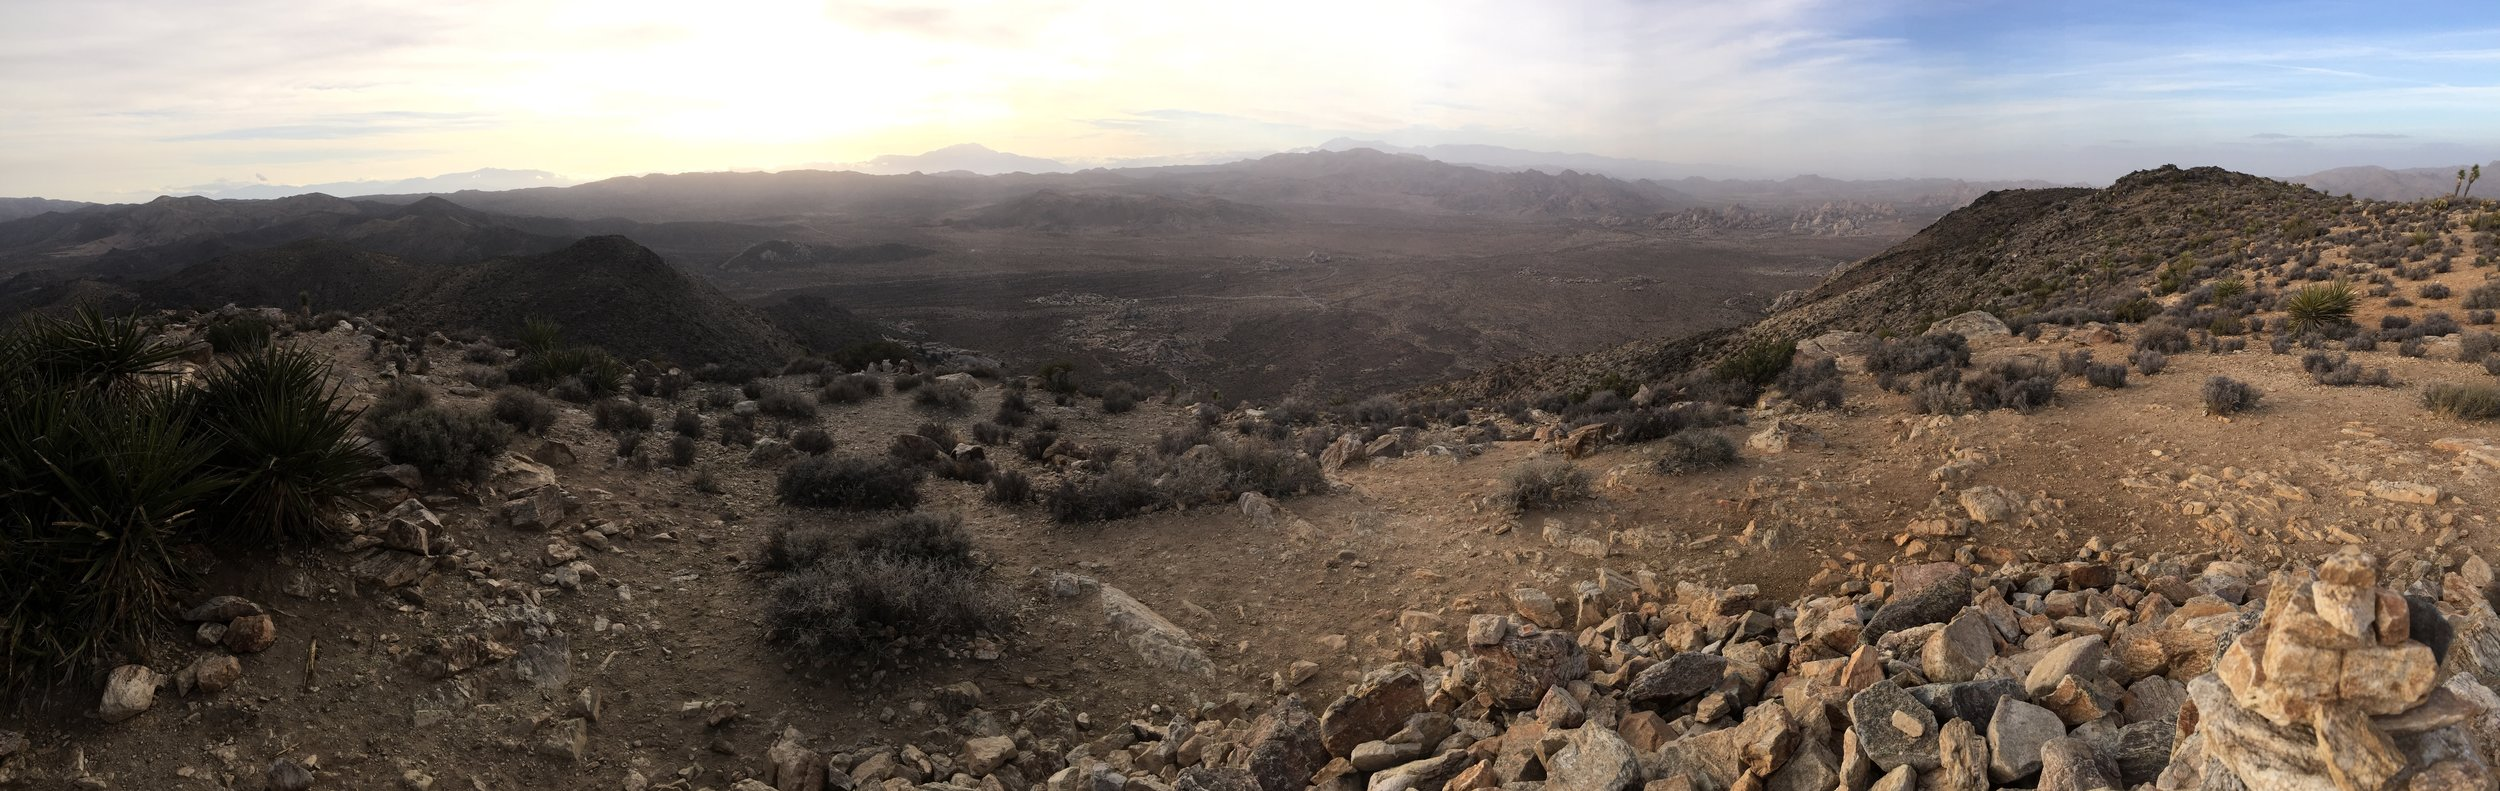 Joshua Tree National Park overlook from atop Ryan Mountain